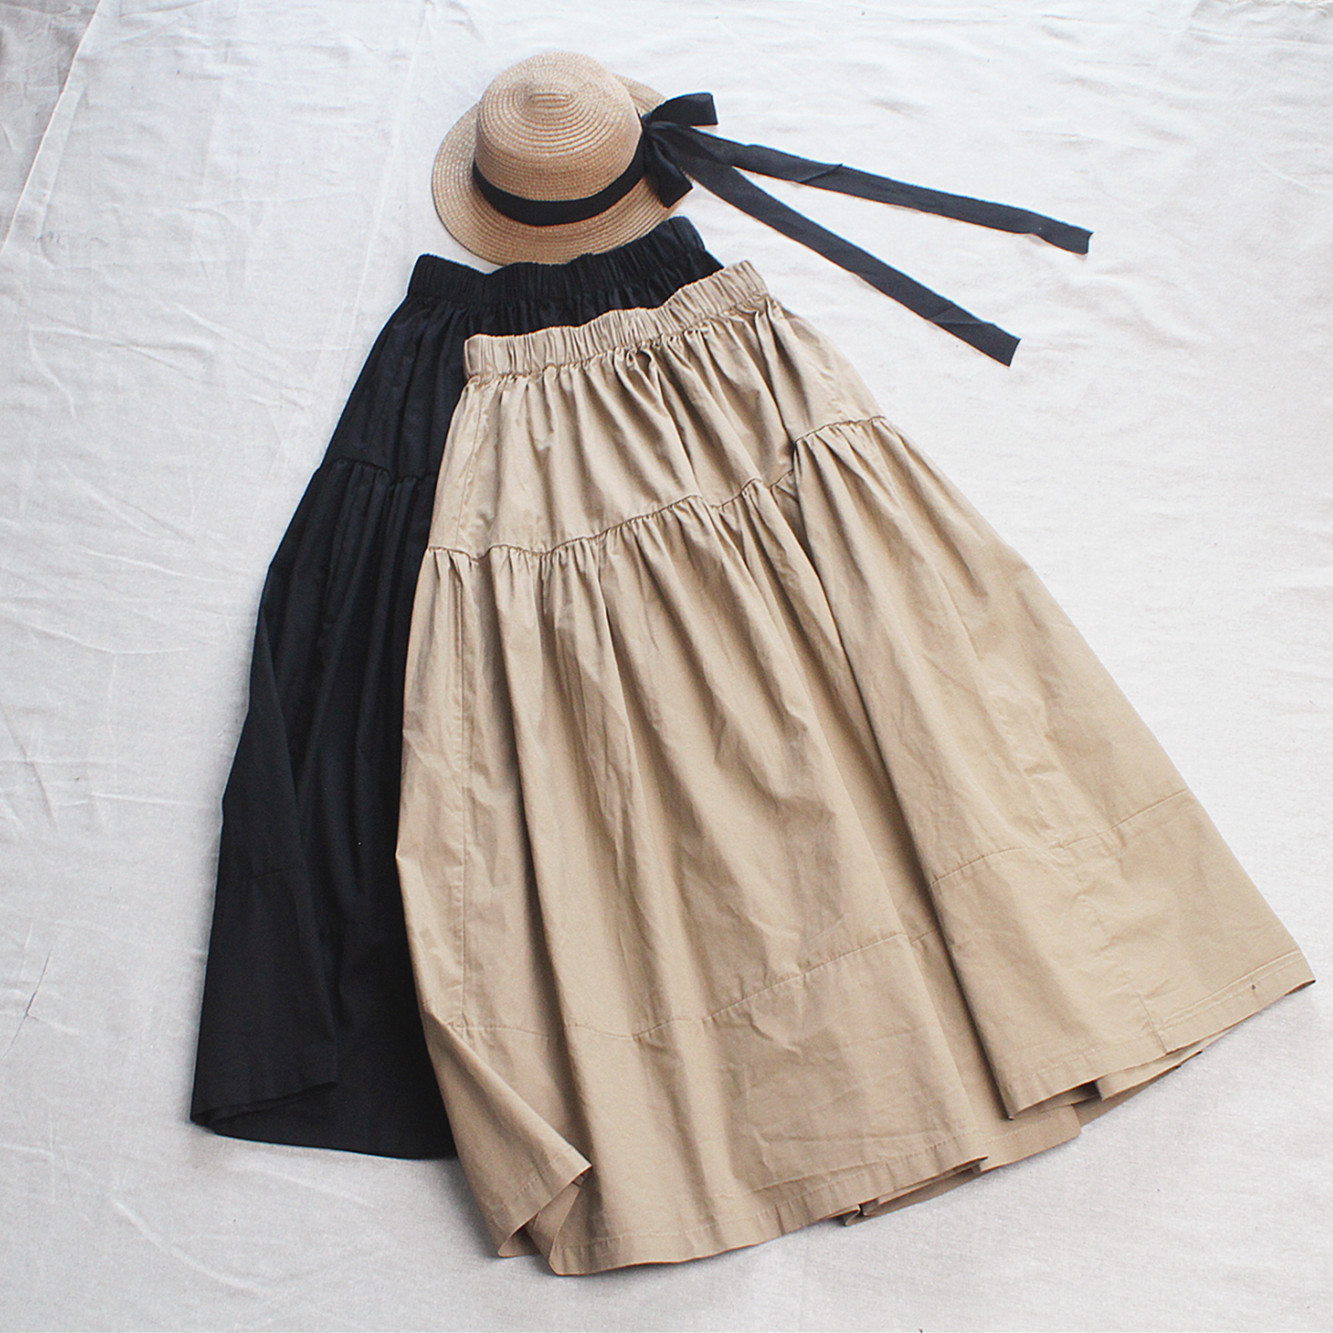 2020 New High Waist Women Summer Cotton Skirt Saia Elastic Waist Women A-Line Khaki Skirt Faldas Jupe Femme